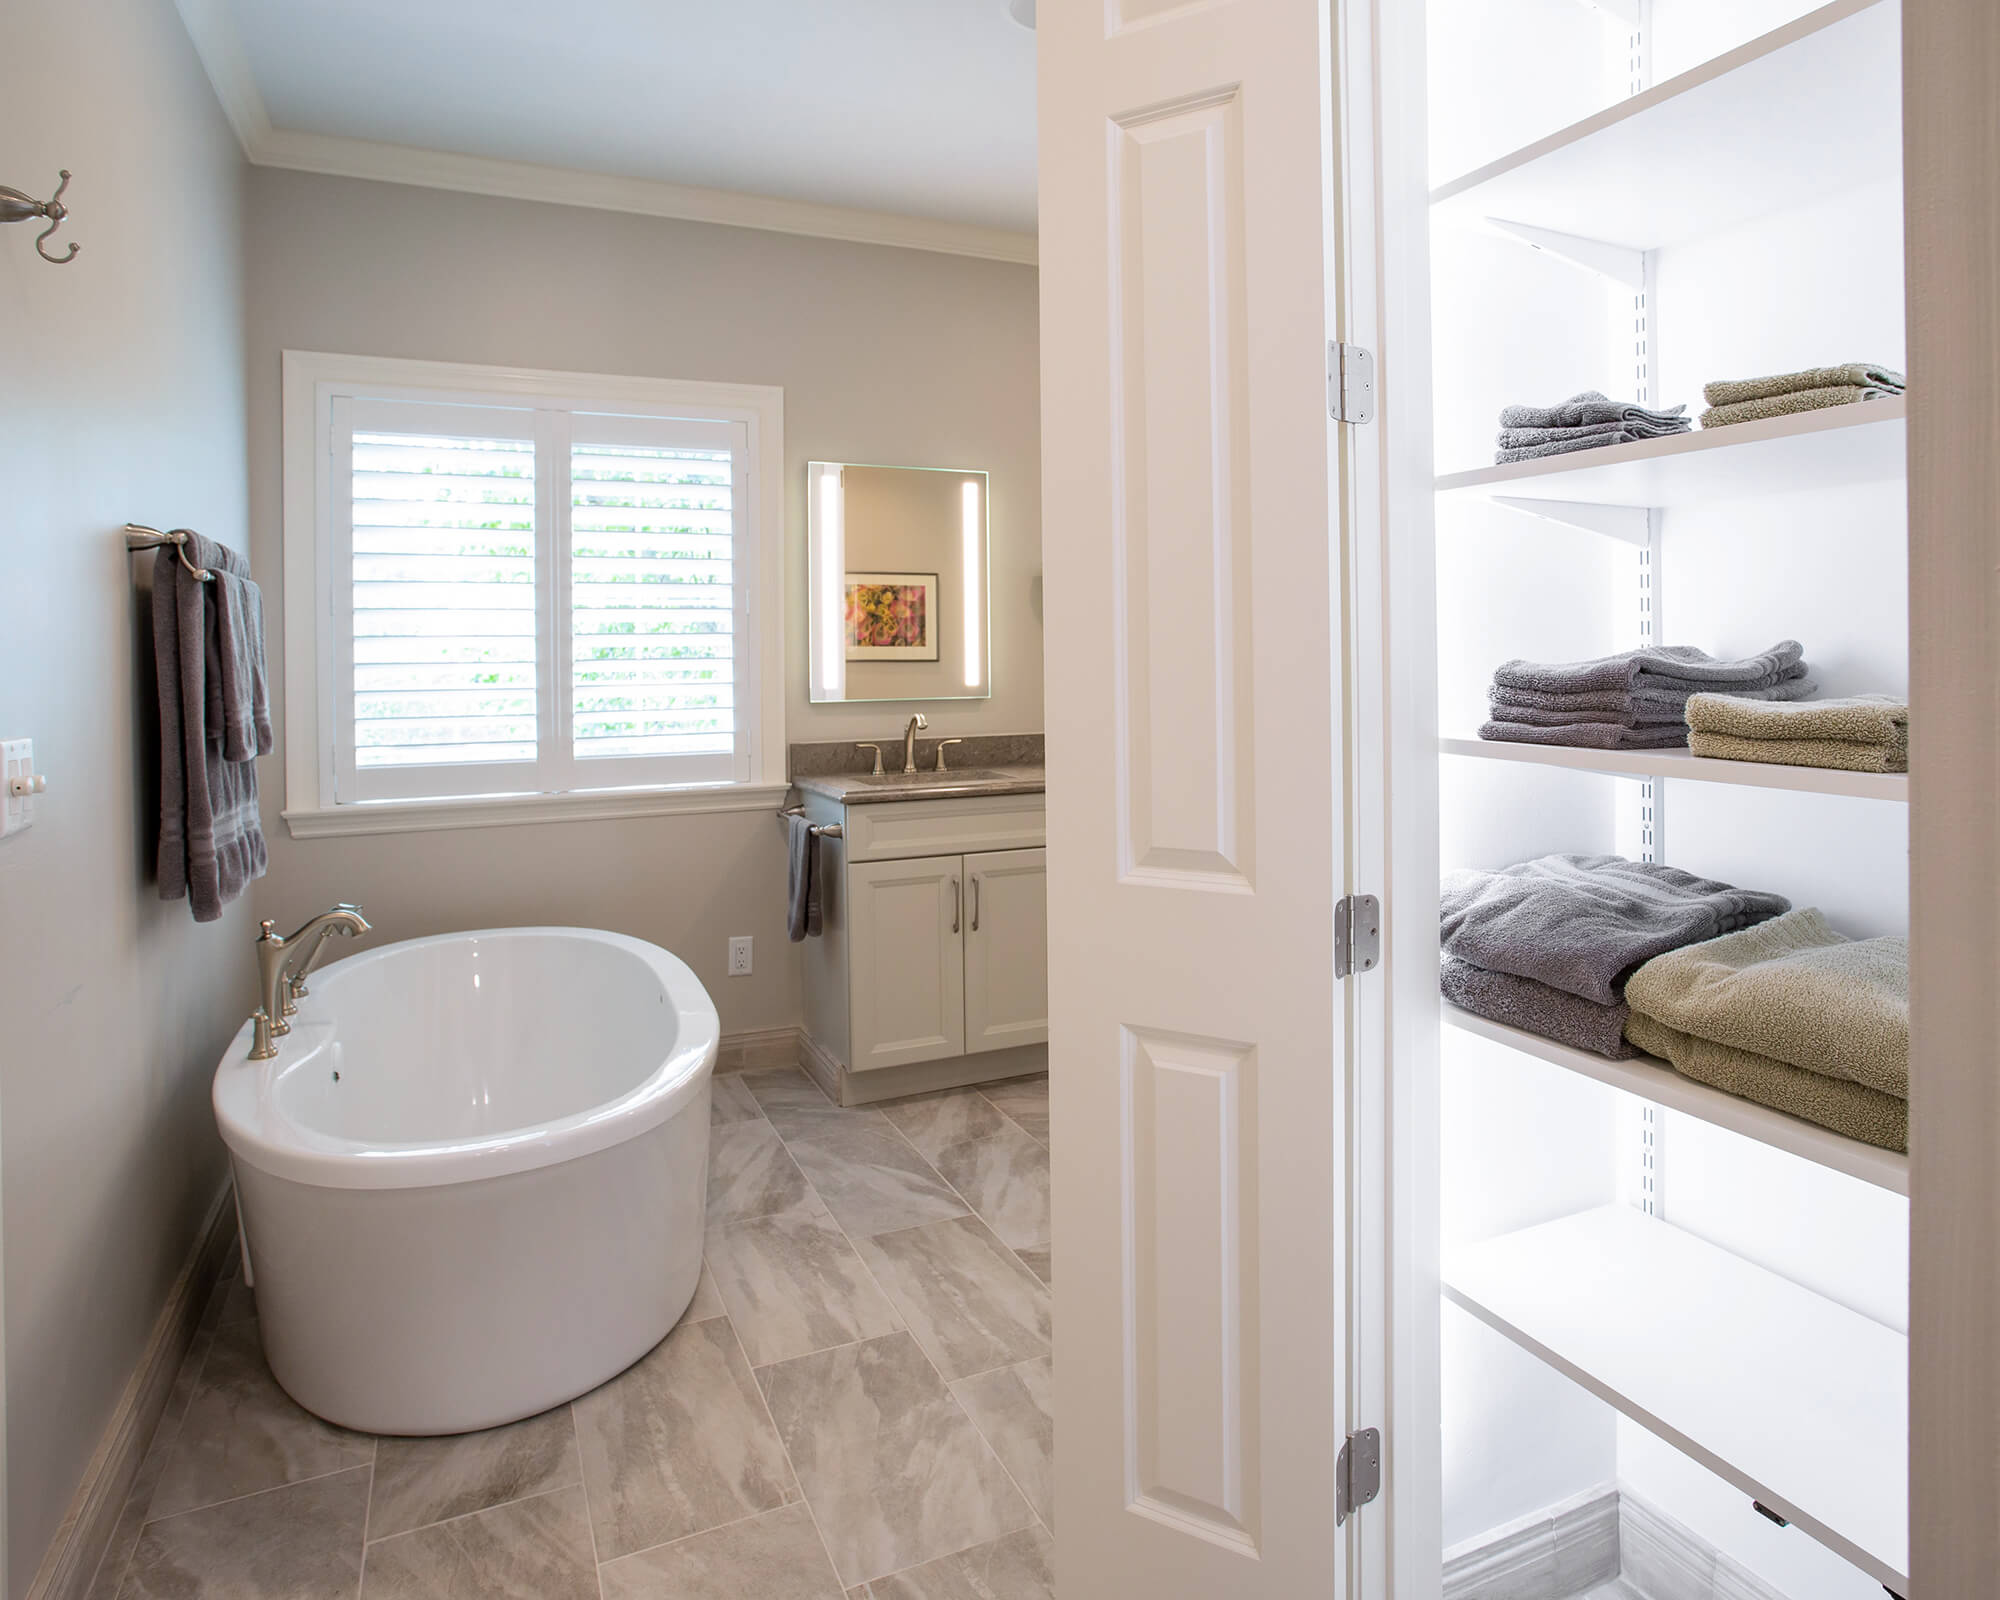 Retired couple turns to Aptitude to improve bathroom functionality